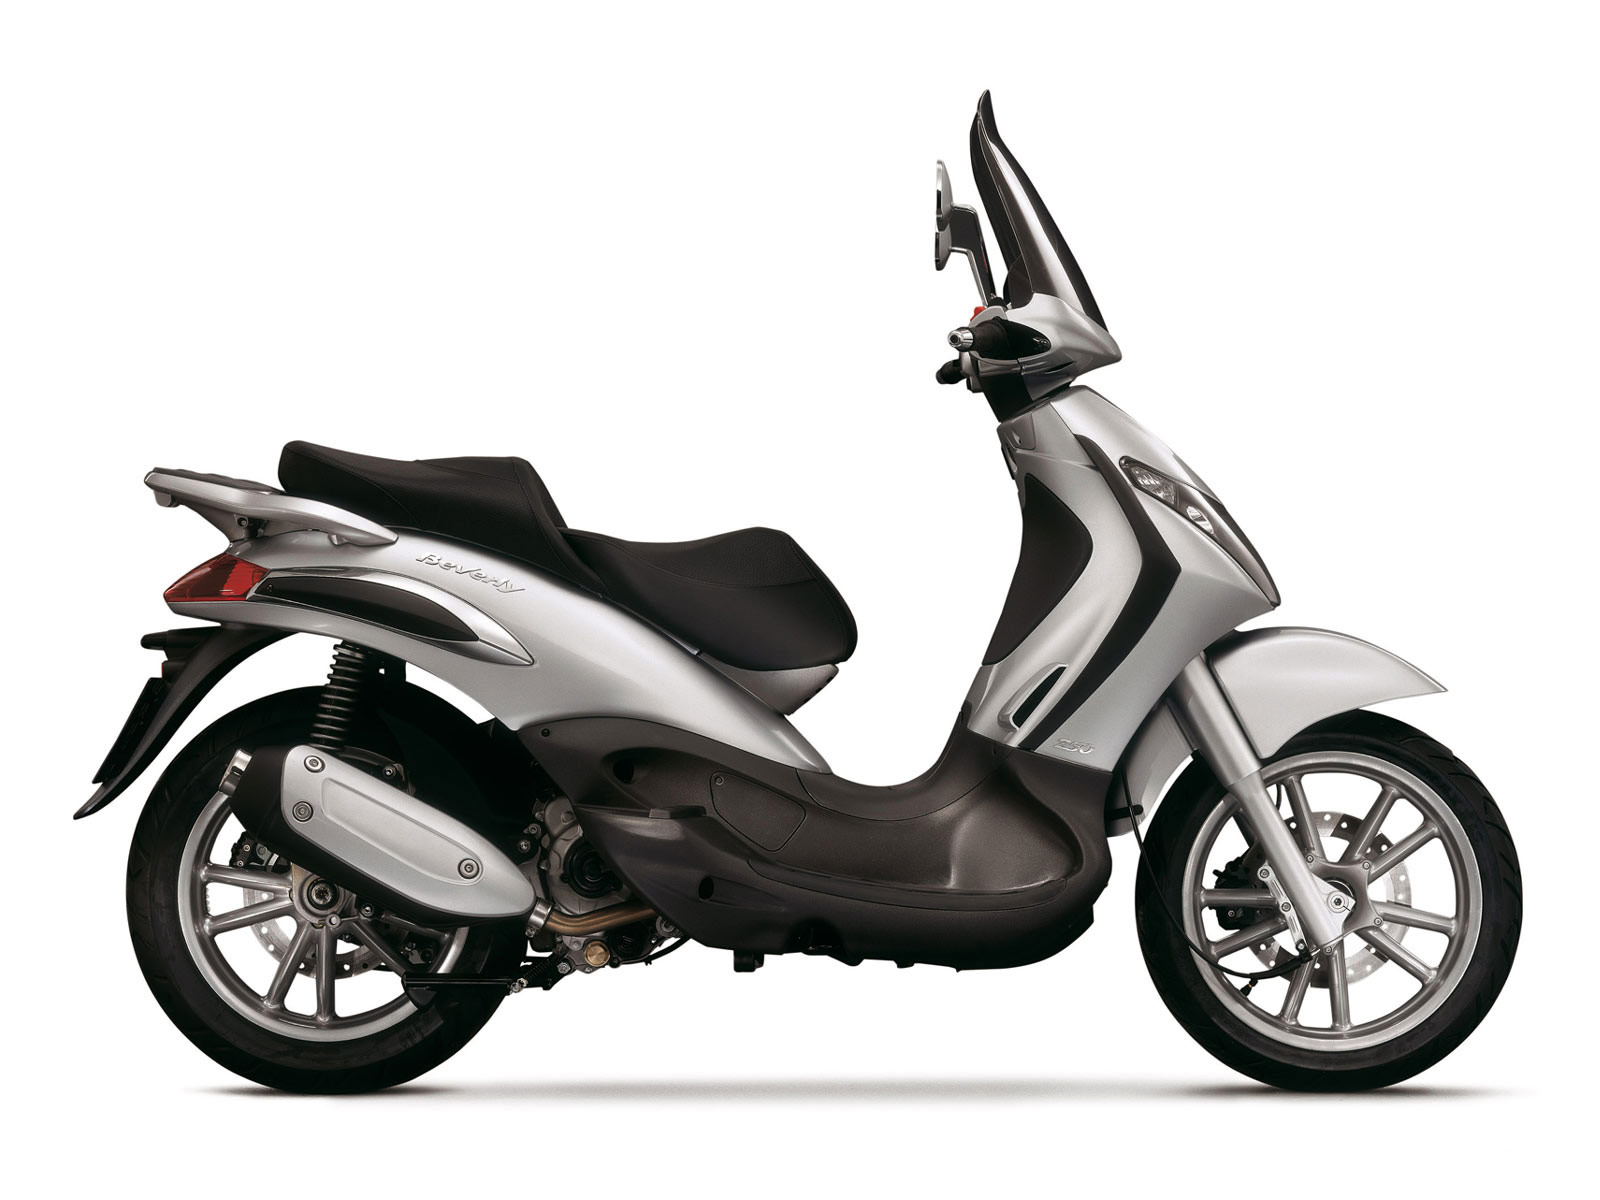 Piaggio Scooter Pictures 2007 Beverly 250 Specifications